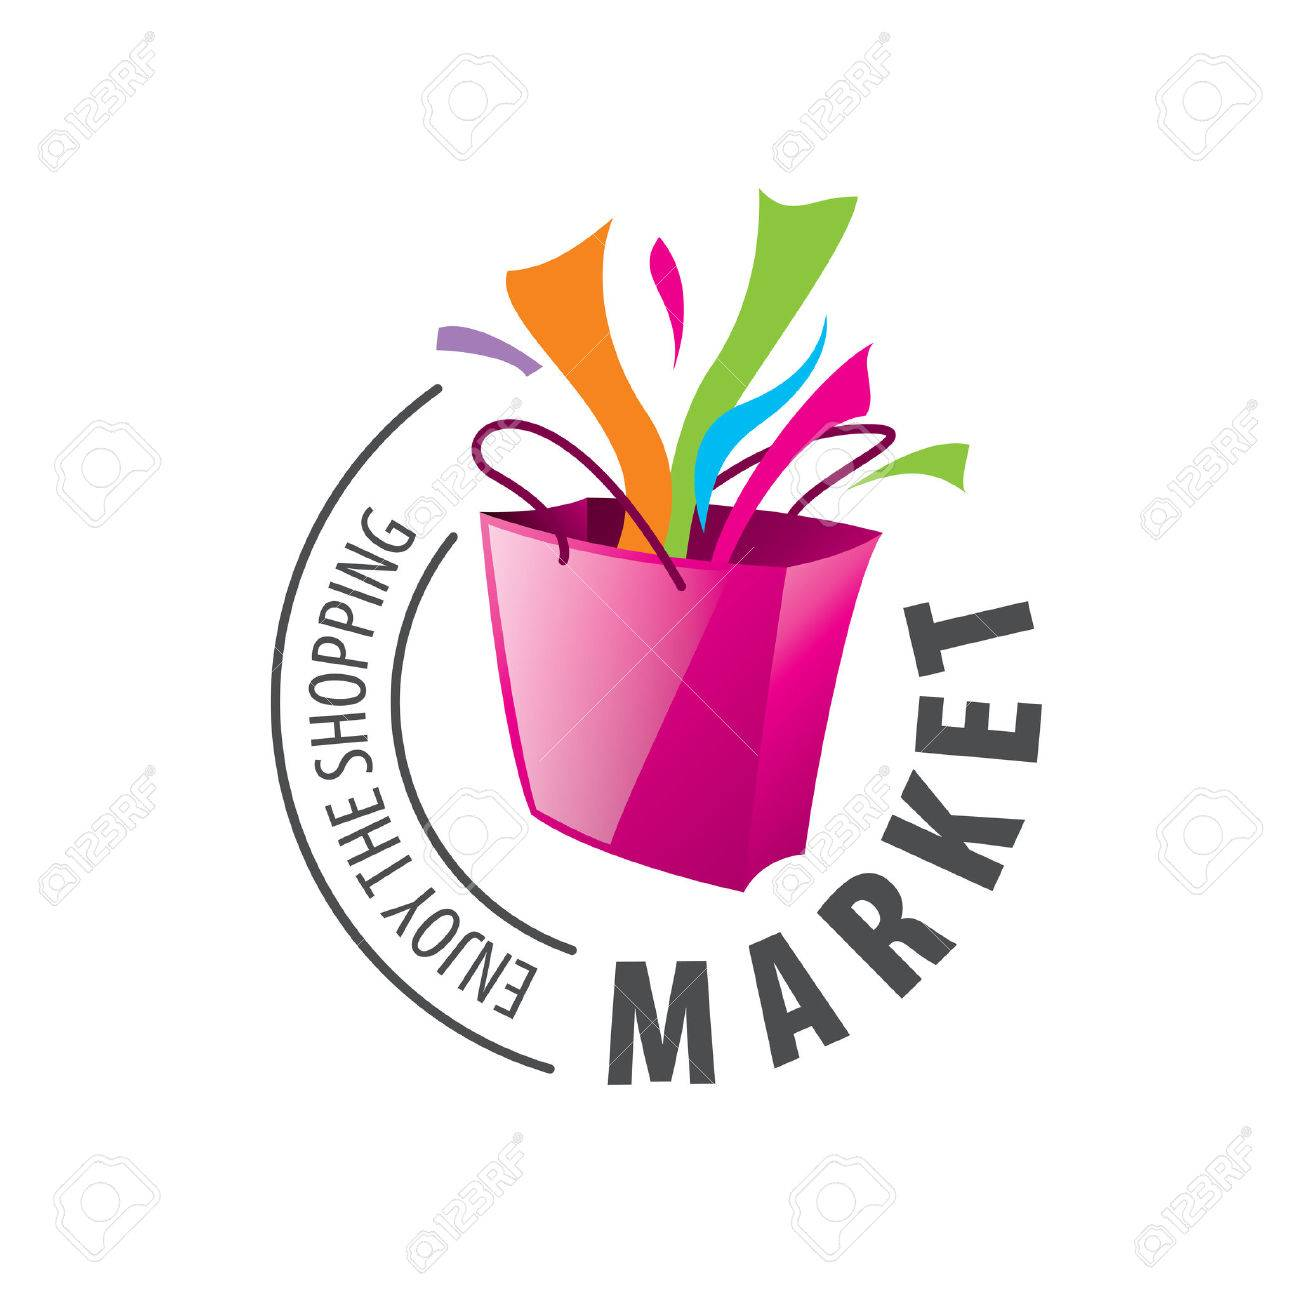 Vector logo template for shopping. Concepts and ideas - 53667696